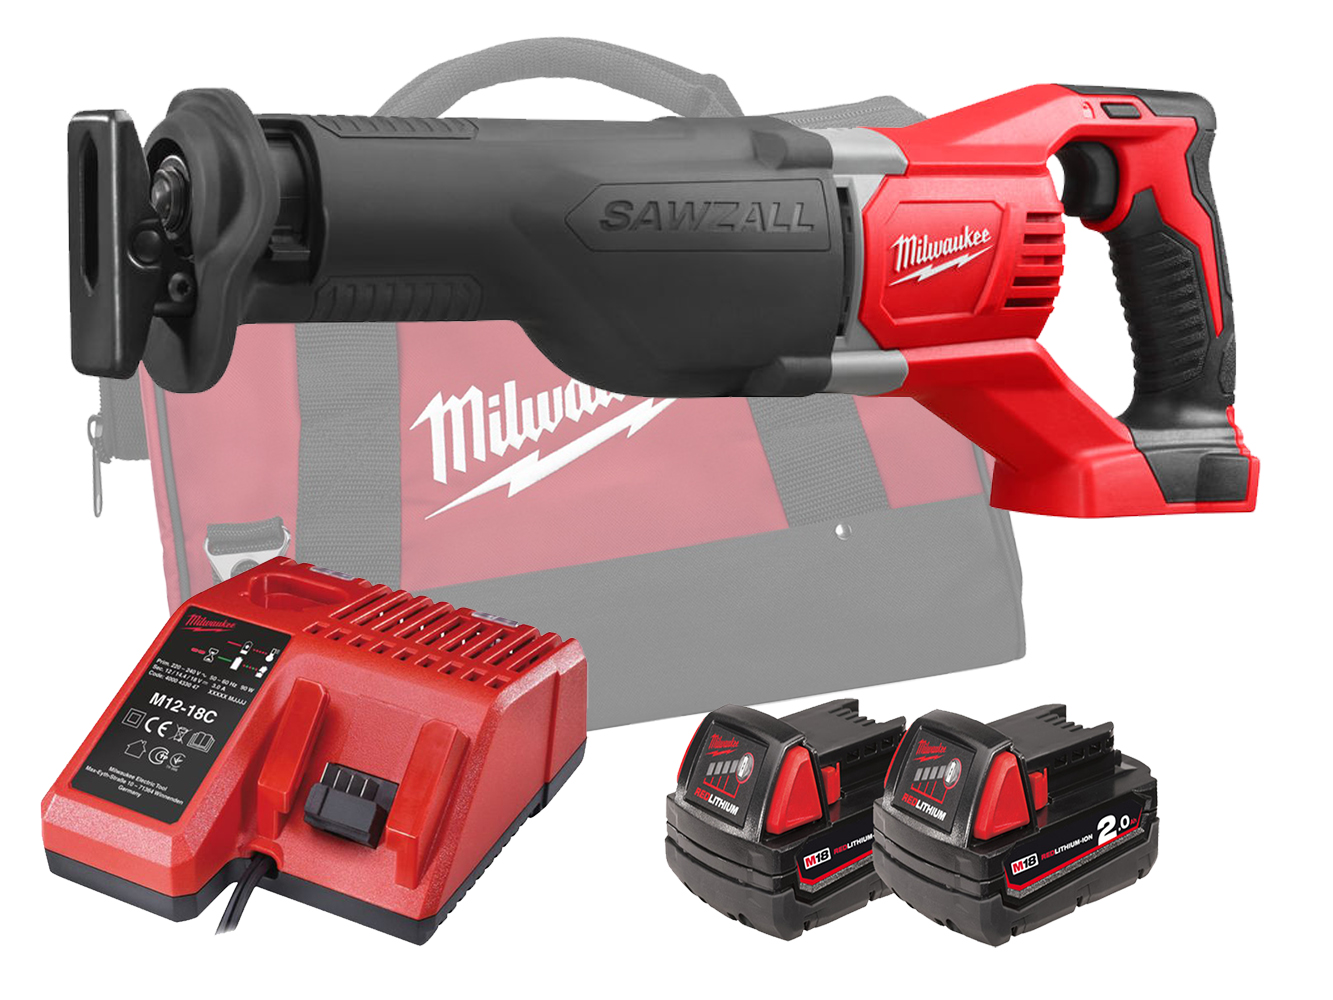 MILWAUKEE 18V BRUSHED SAWZALL (RECIPROCATING SAW) - M18BSX - 2.0AH PACK